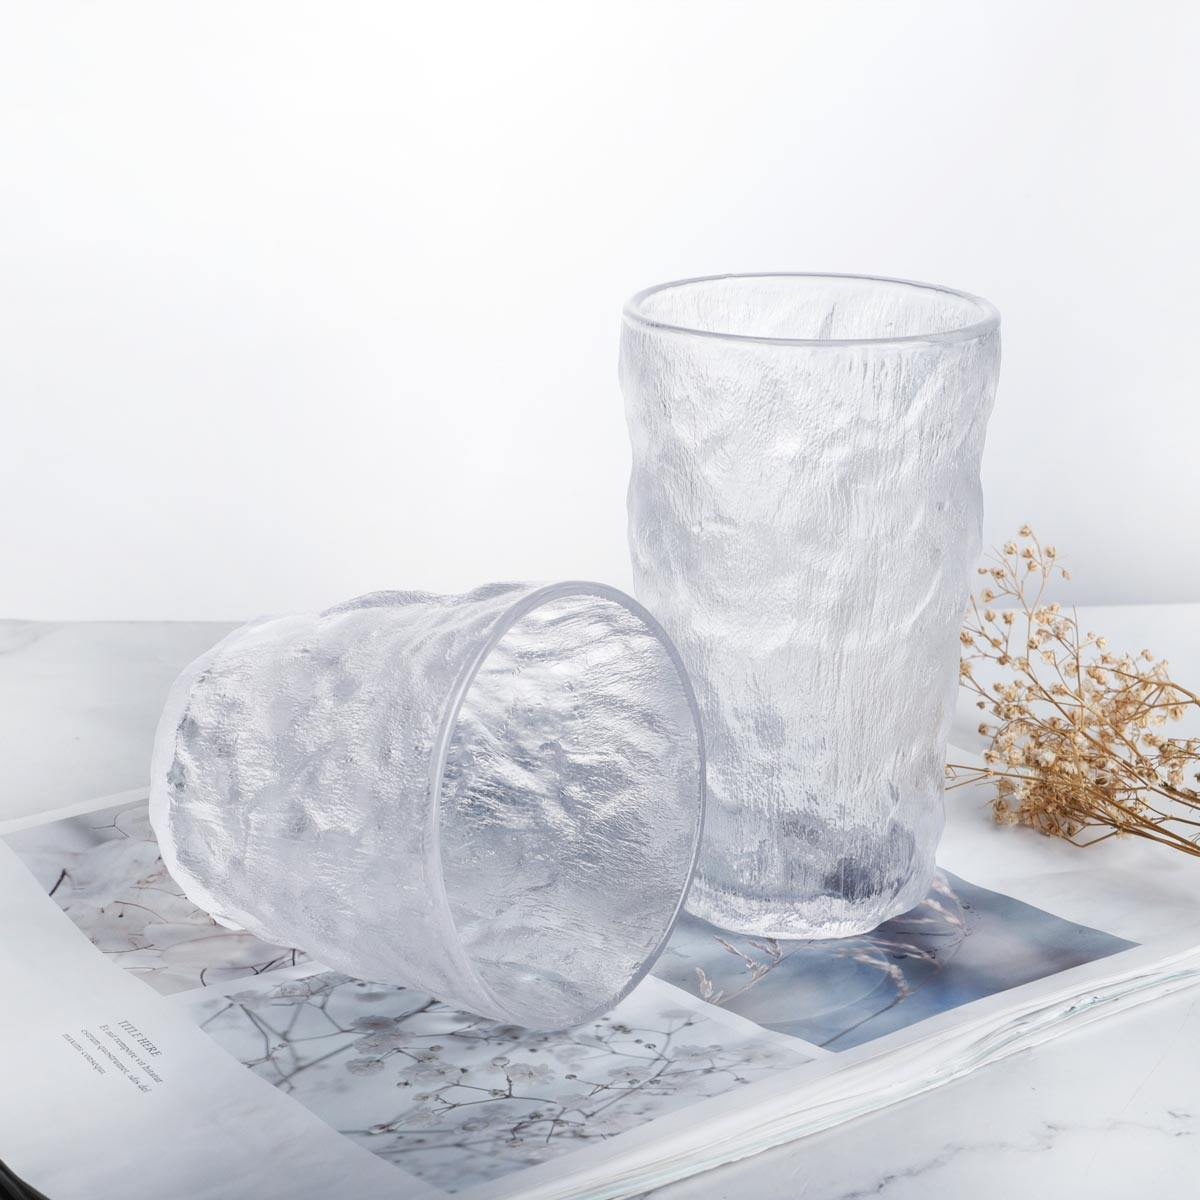 Wholesale bark pattern Japanese hammer pattern glass frosted platform pressed glass tumbler